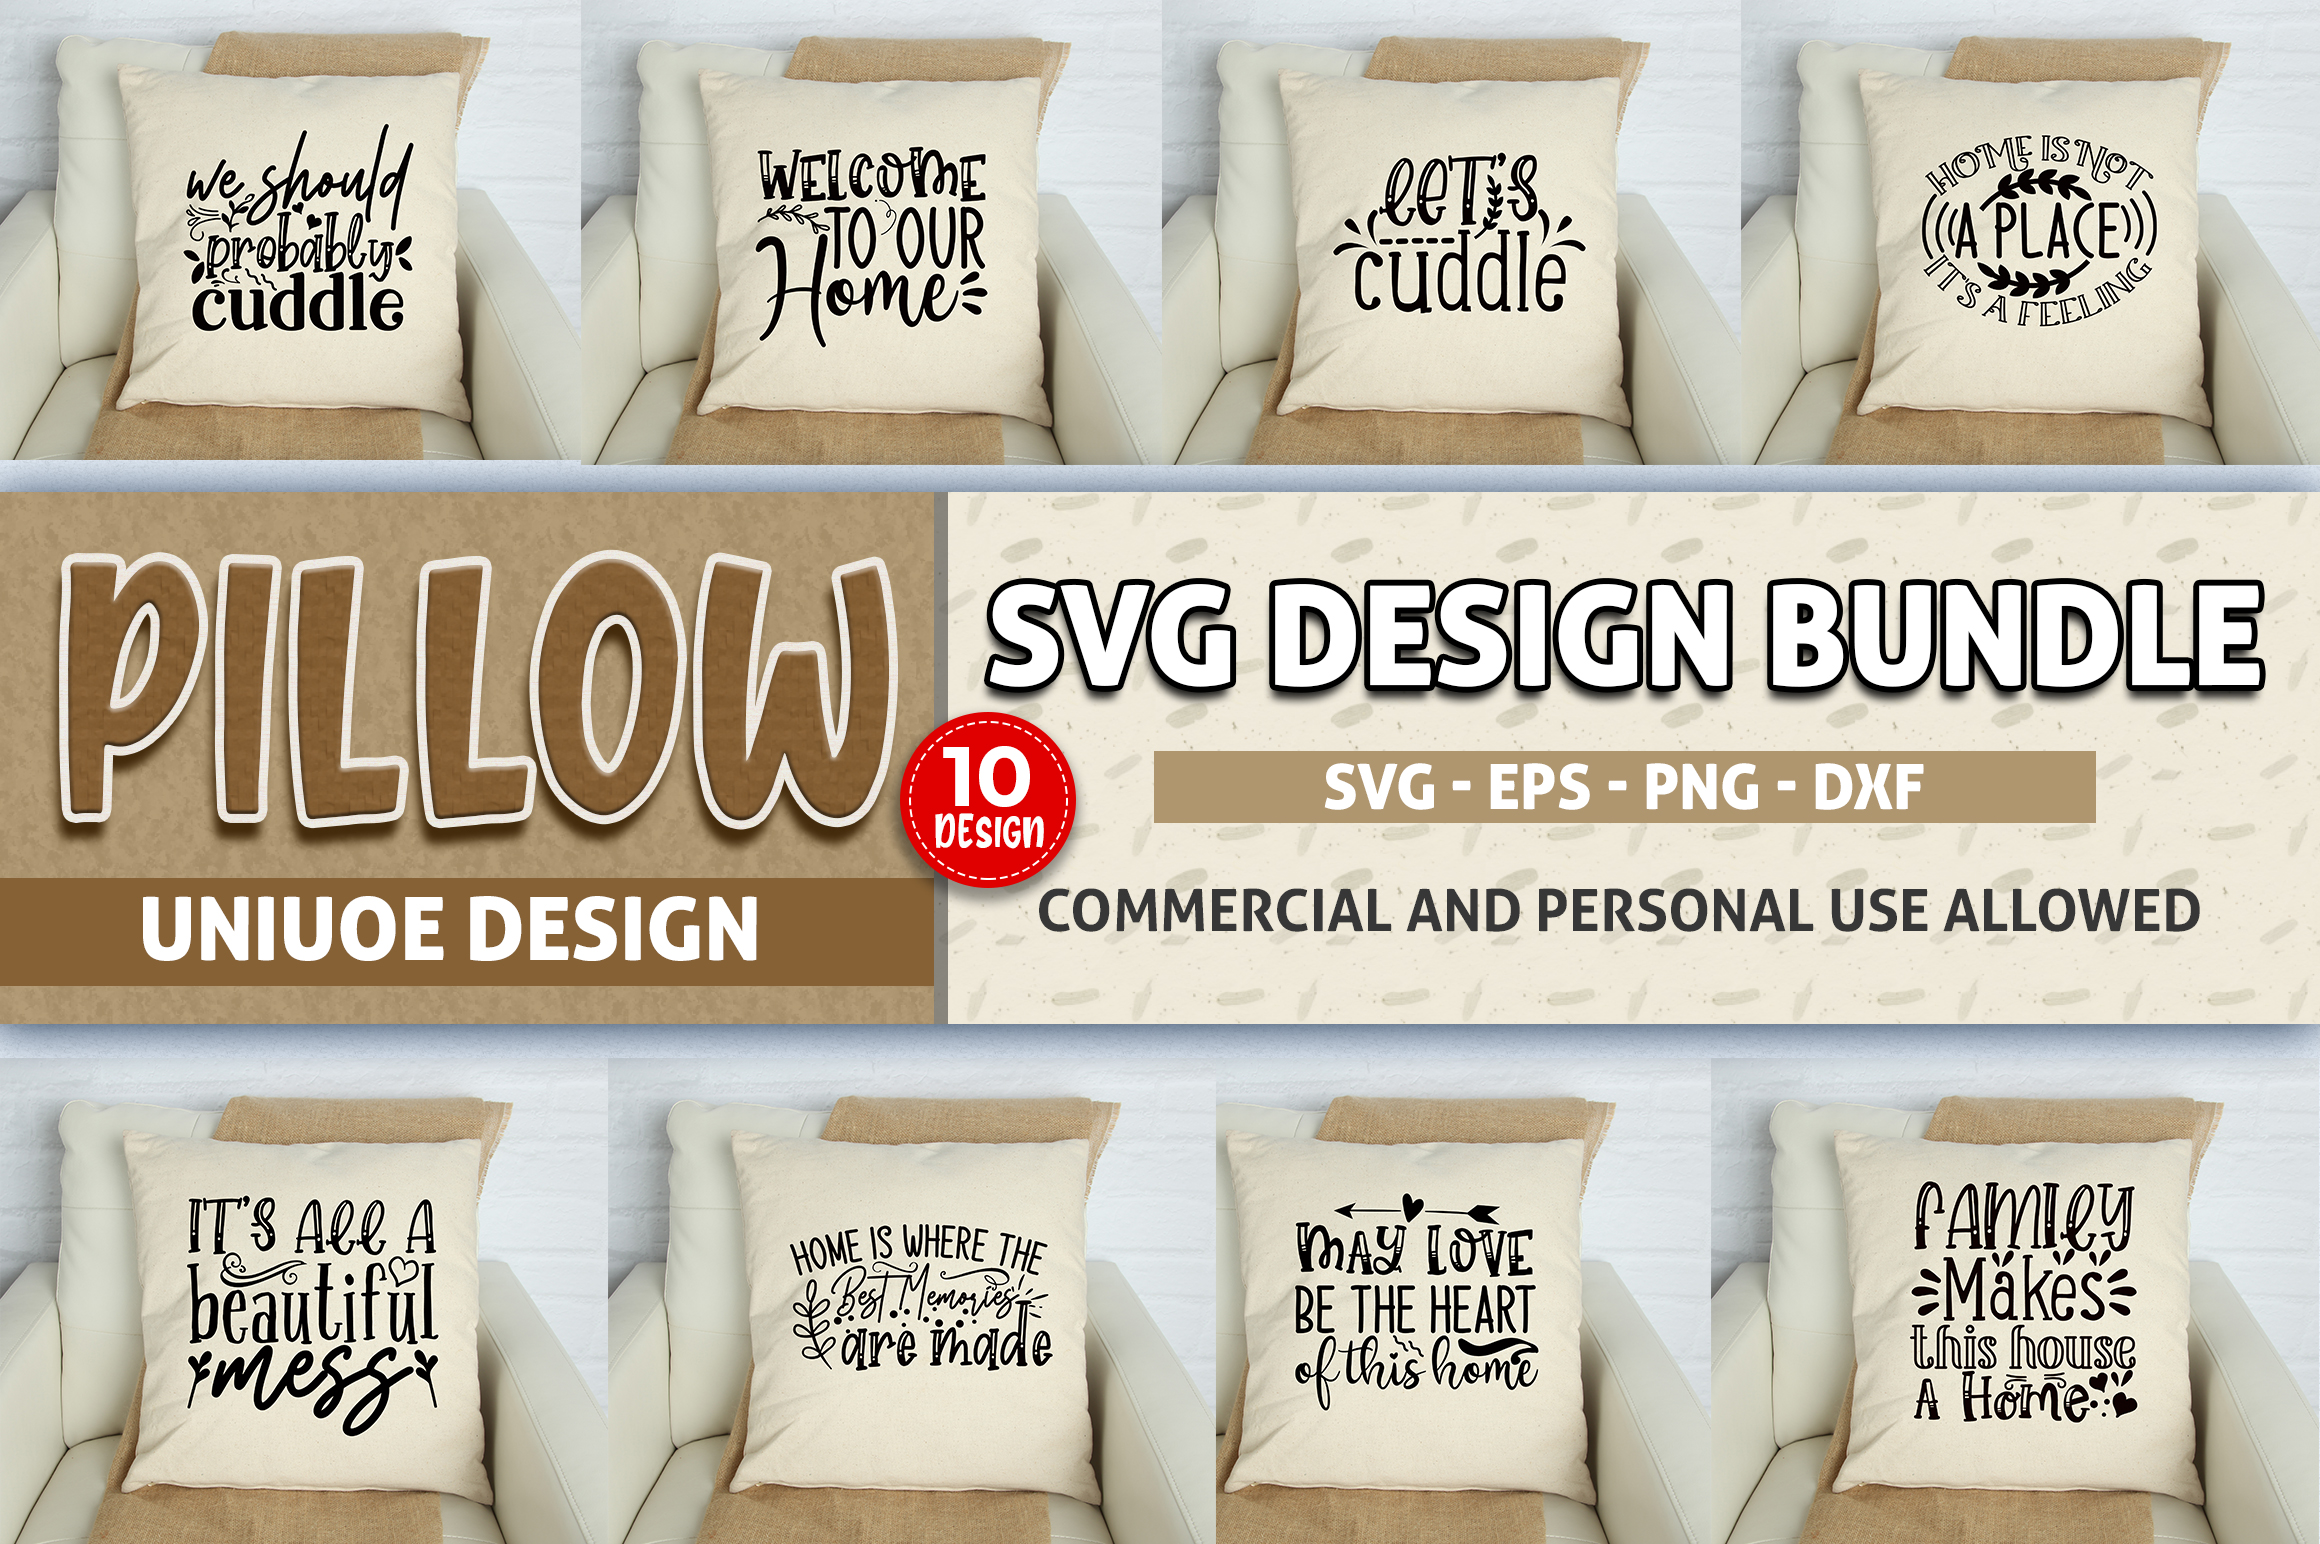 510 SVG DESIGN THE MIGHTY BUNDLE |32 DIFFERENT BUNDLES example image 7